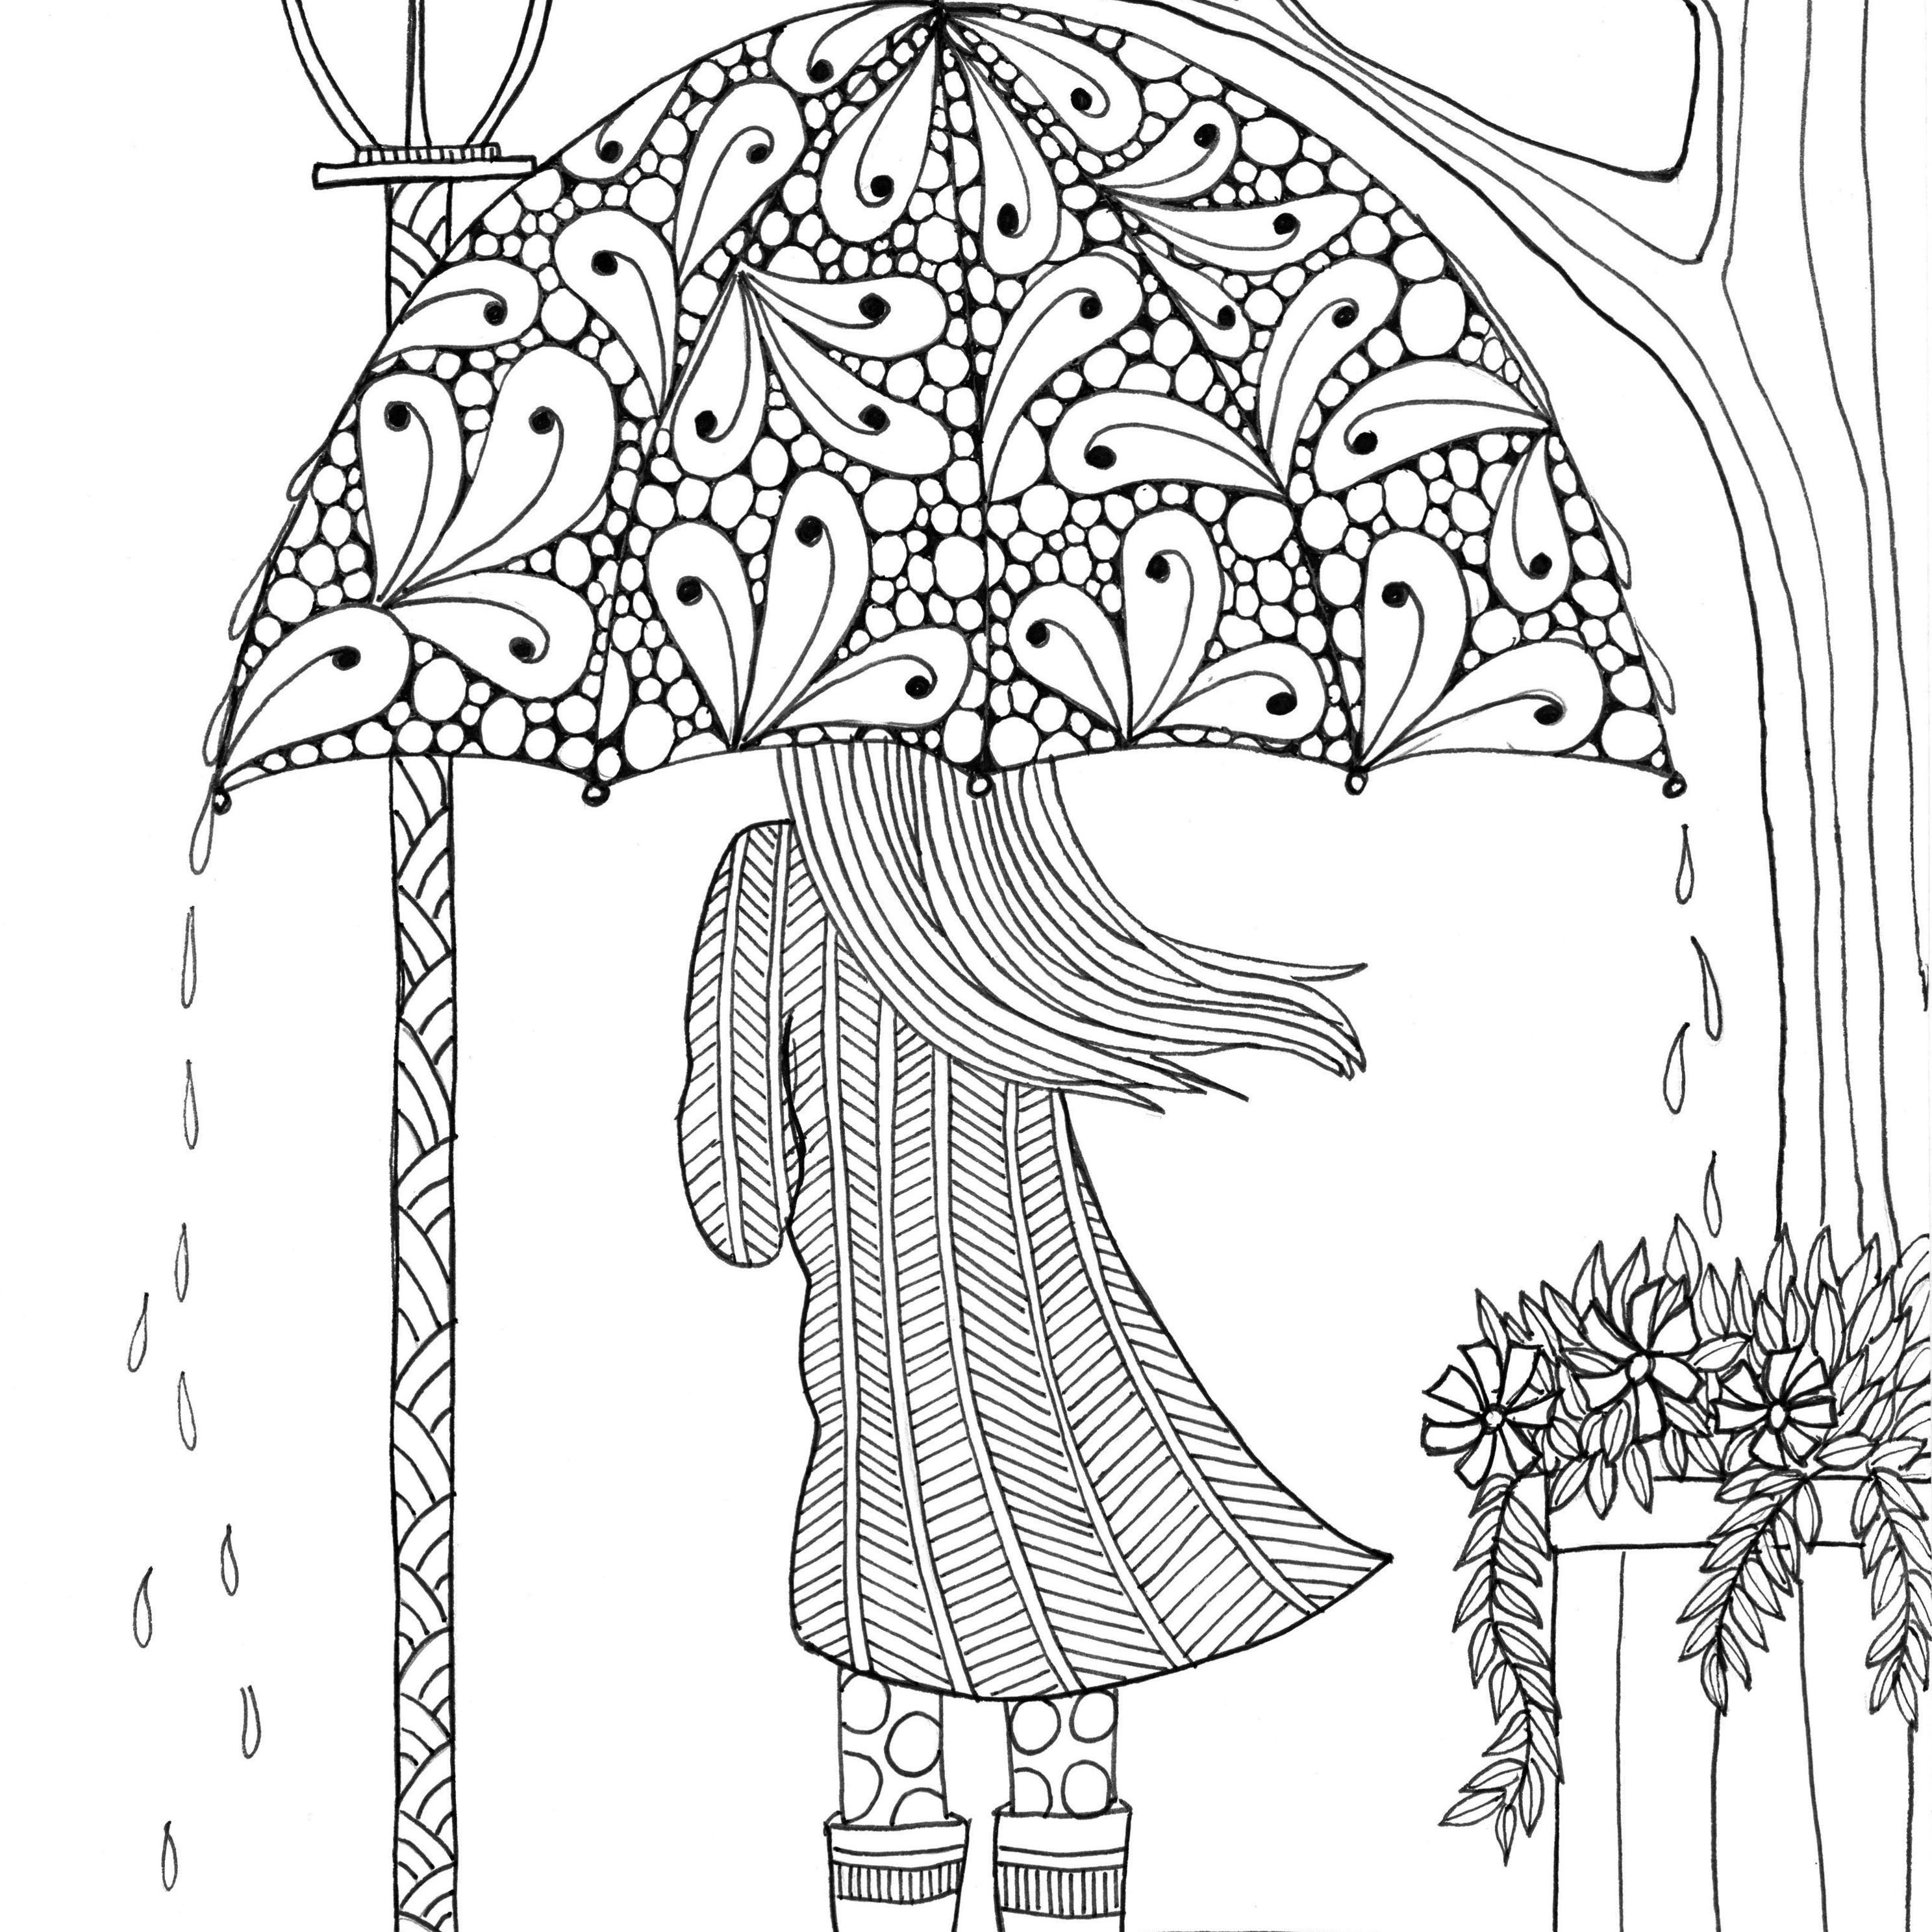 21+ Amazing Image of Adult Coloring Pages